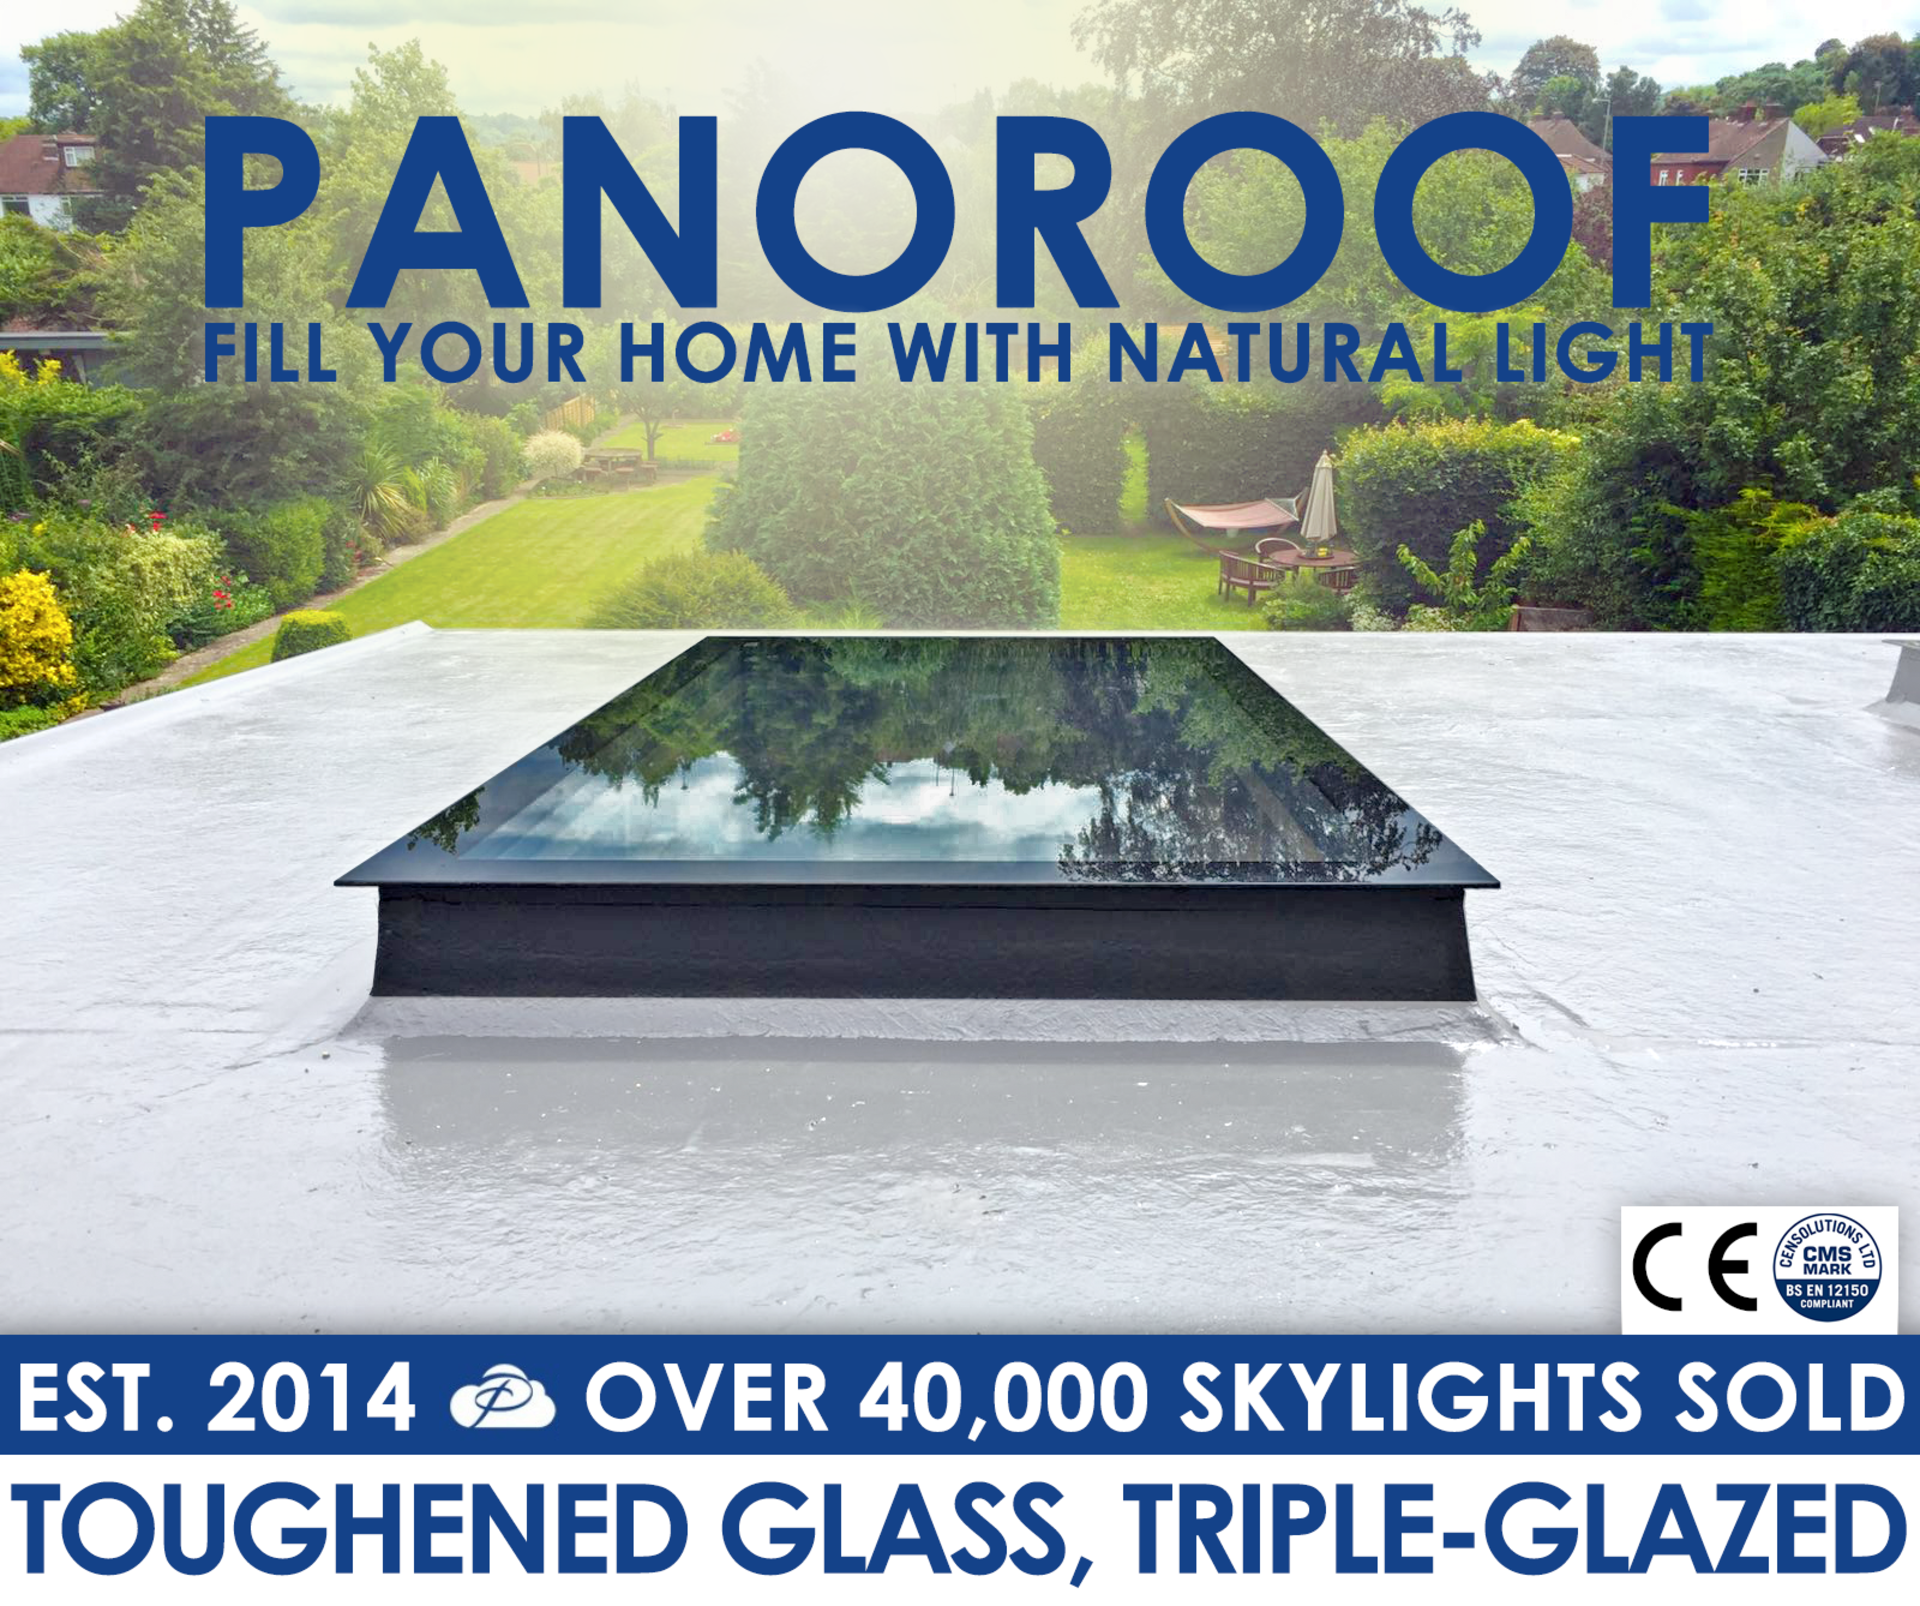 Panoroof 2000x2000mm (inside Size Visable glass area) Seamless Glass Skylight Flat Roof Rooflight